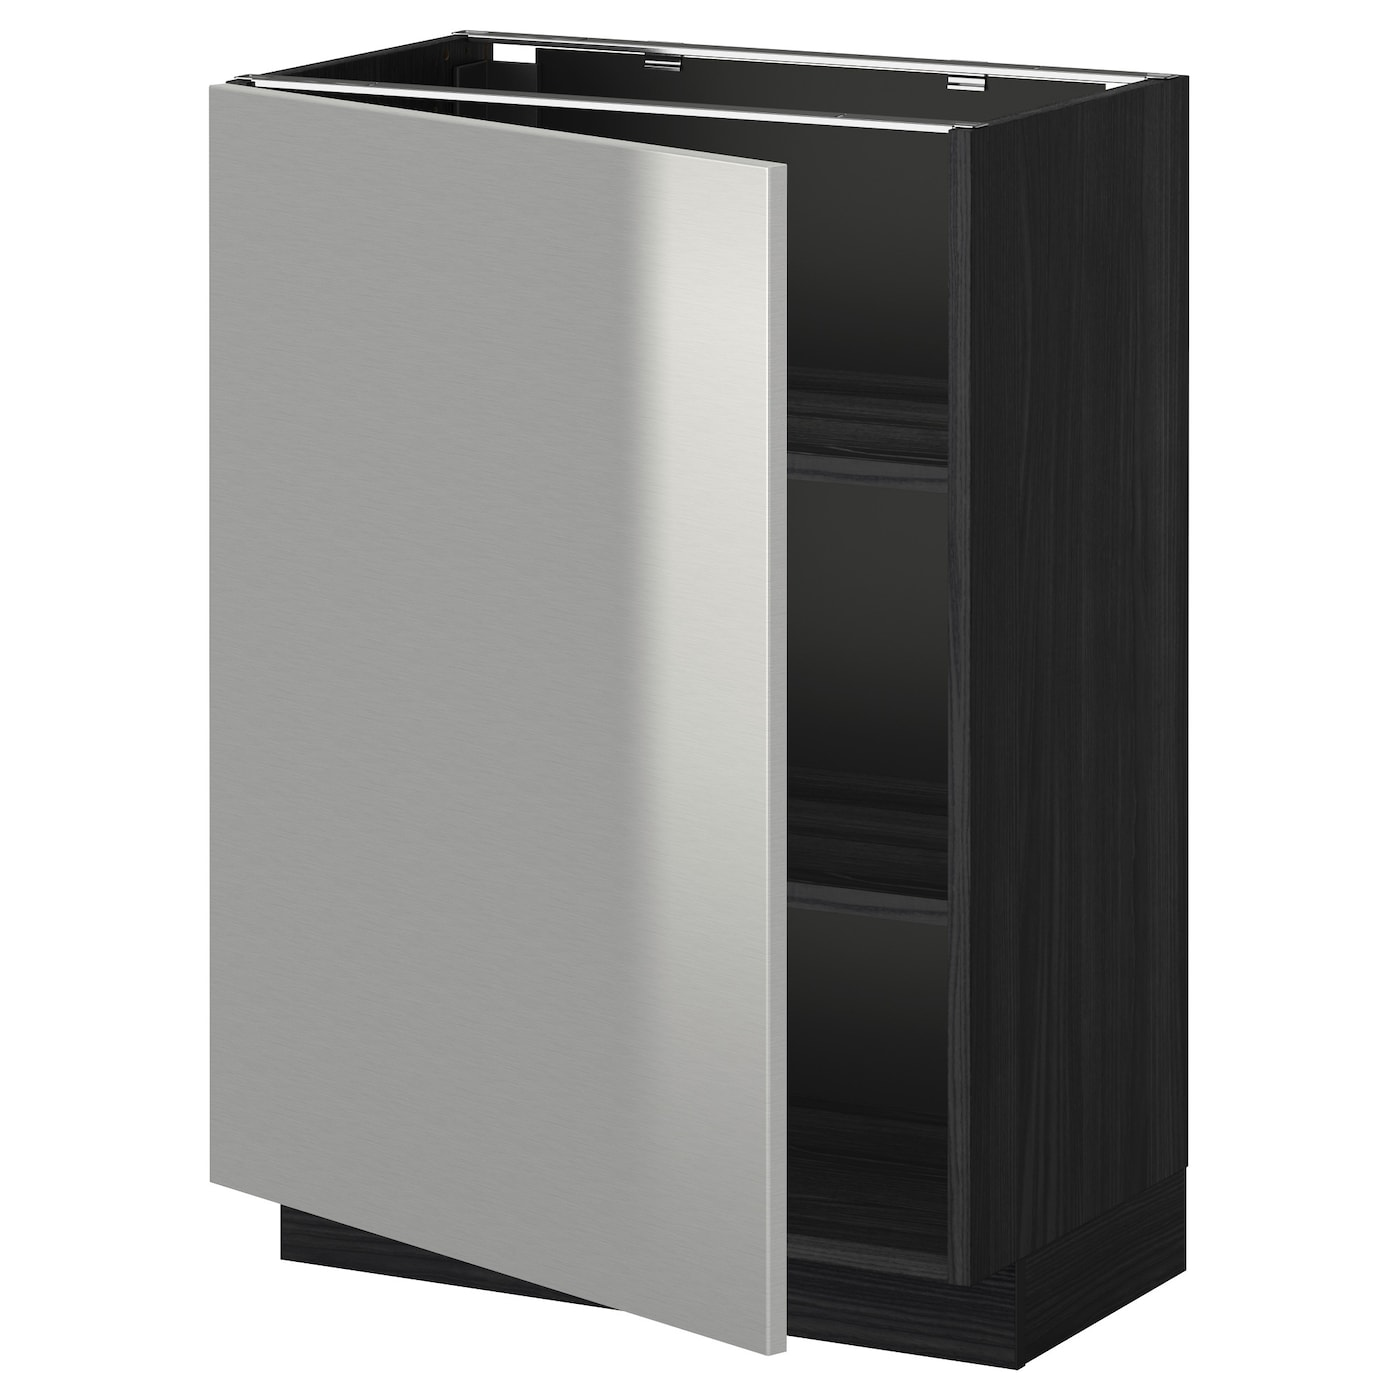 Stainless Steel Kitchen Base Cabinets: METOD Base Cabinet With Shelves Black/grevsta Stainless